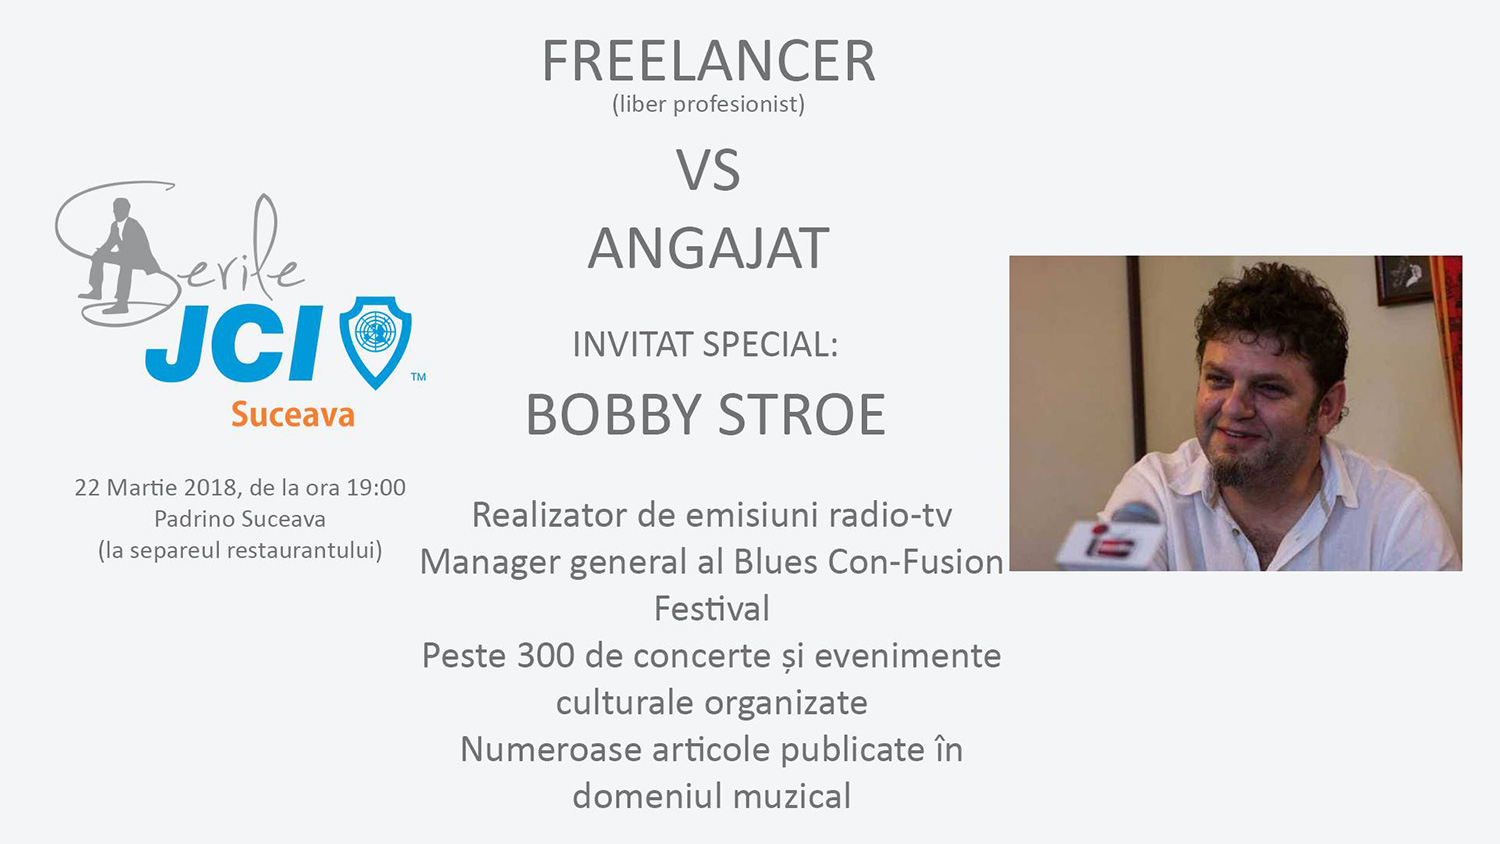 Freelancer (liber profesionist) vs Angajat